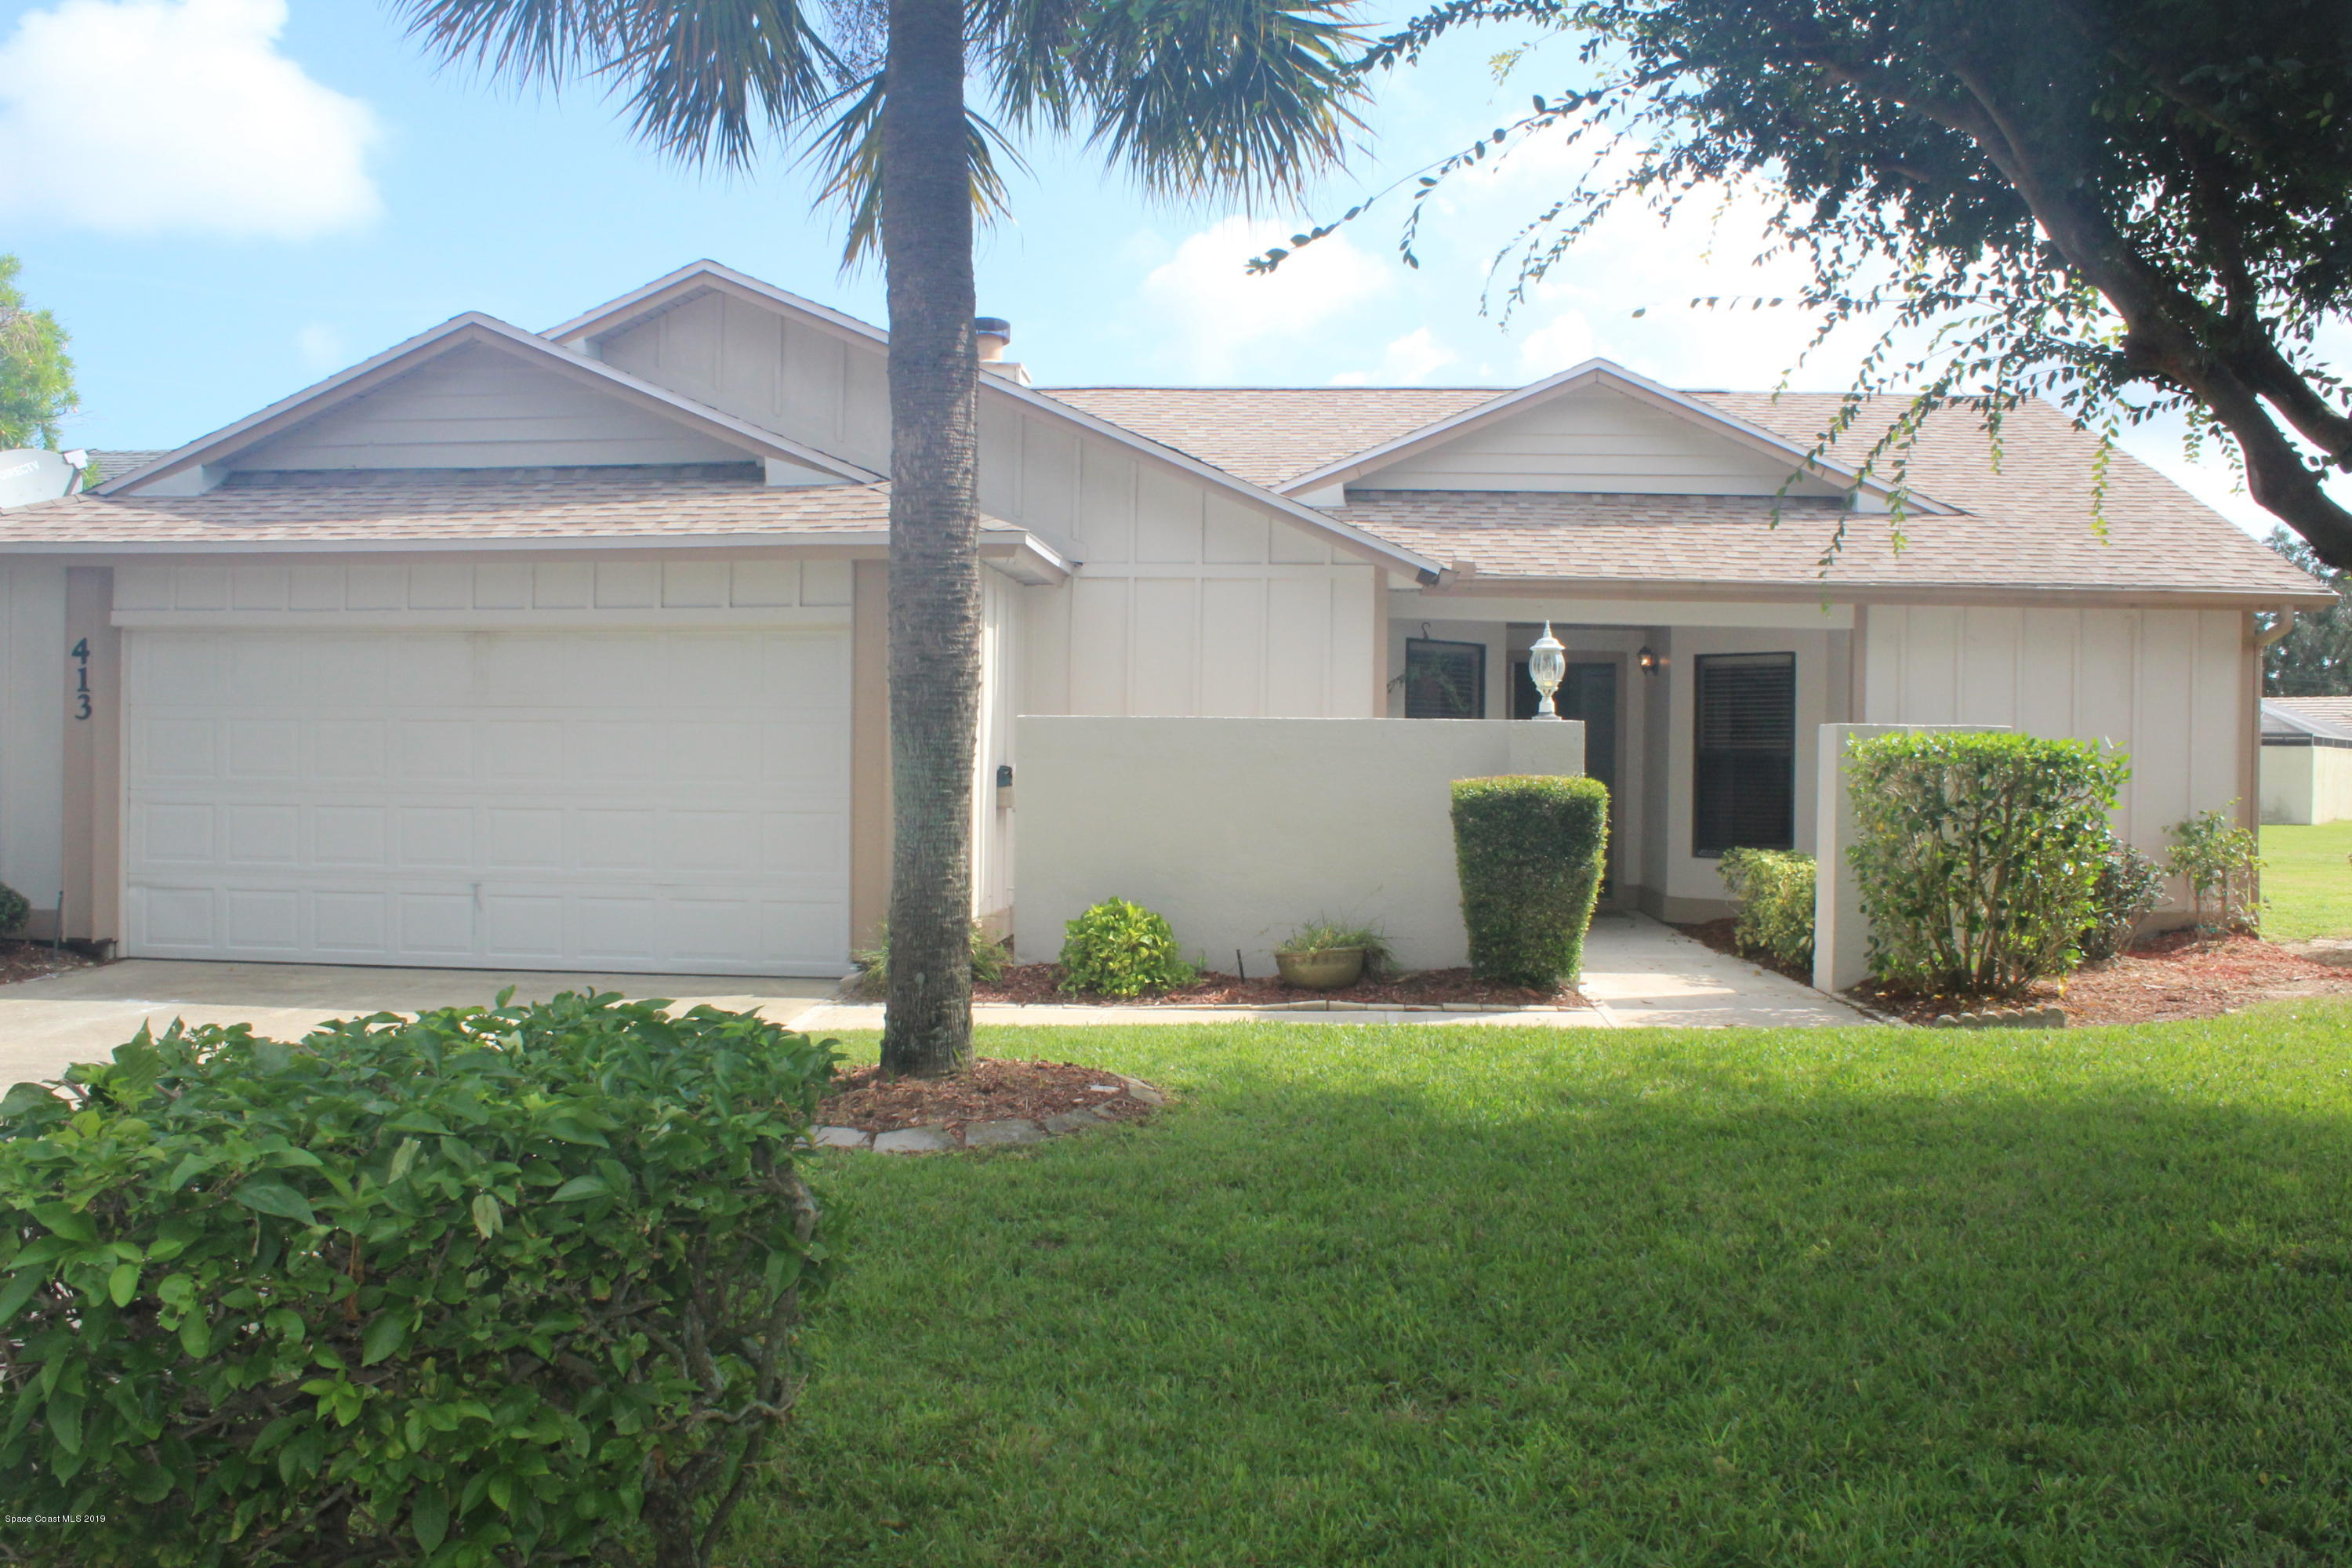 Single Family Homes for Sale at 413 Maple Bluff Melbourne, Florida 32940 United States